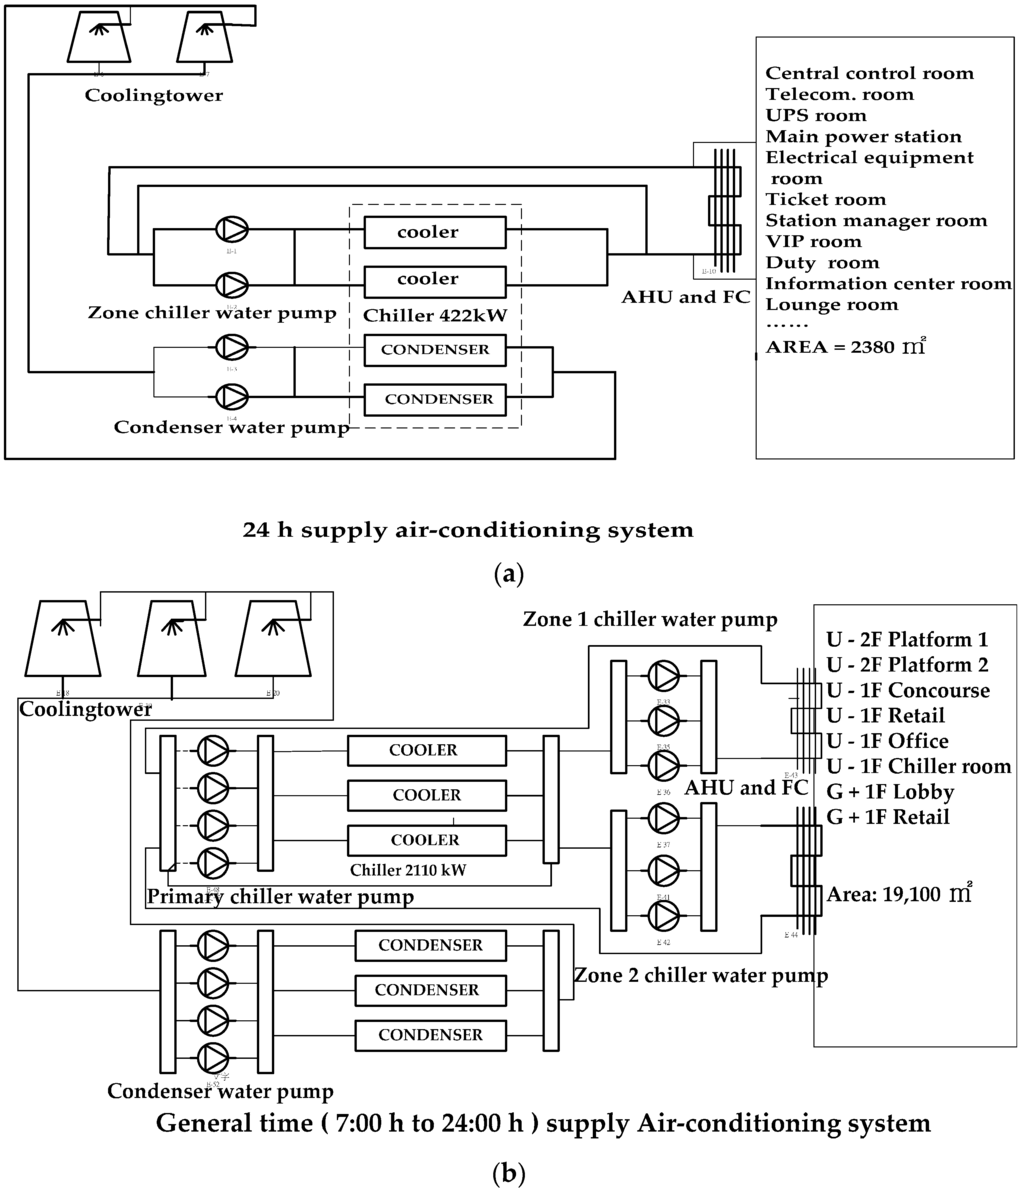 Entropy Fan Controller Wiring Diagram Electrical Diagrams Special Issue And The Economy Drum